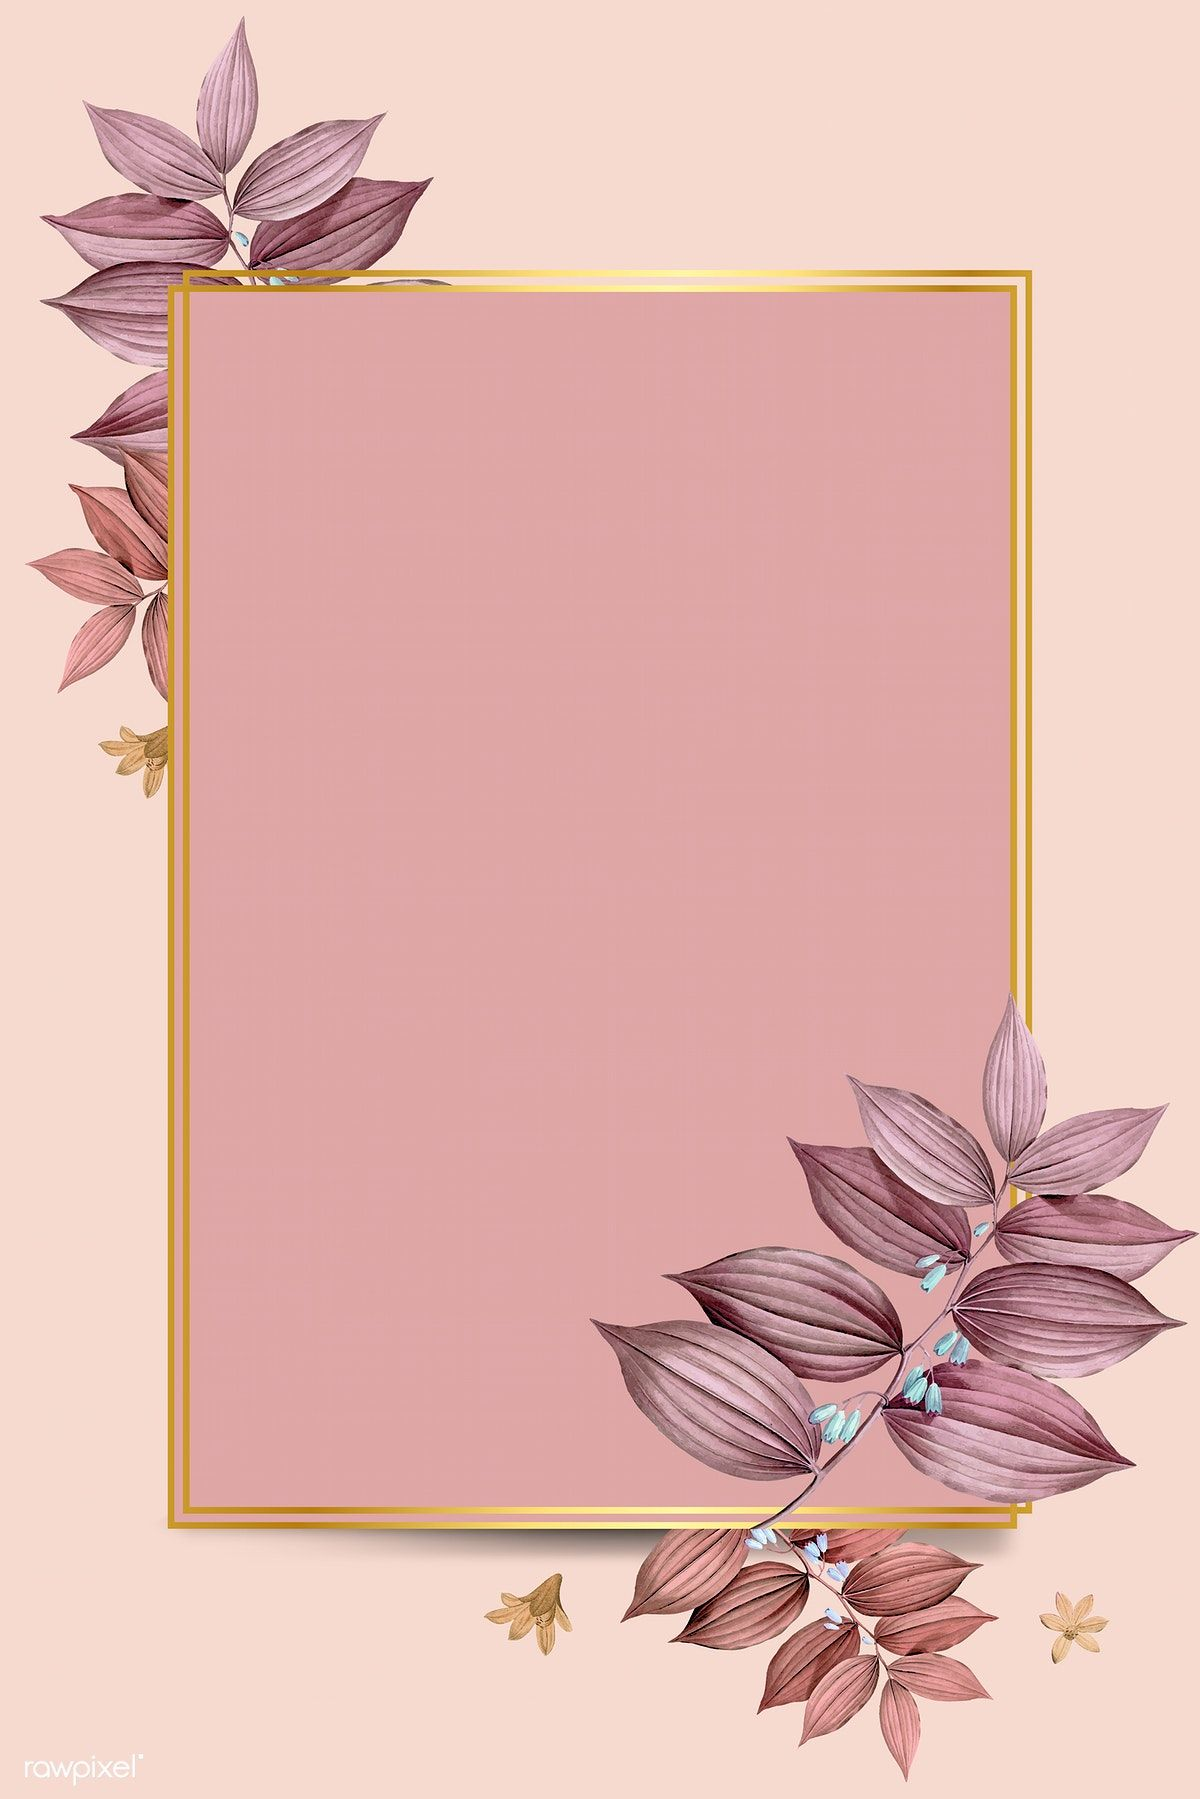 Download premium vector of Rectangle foliage frame on